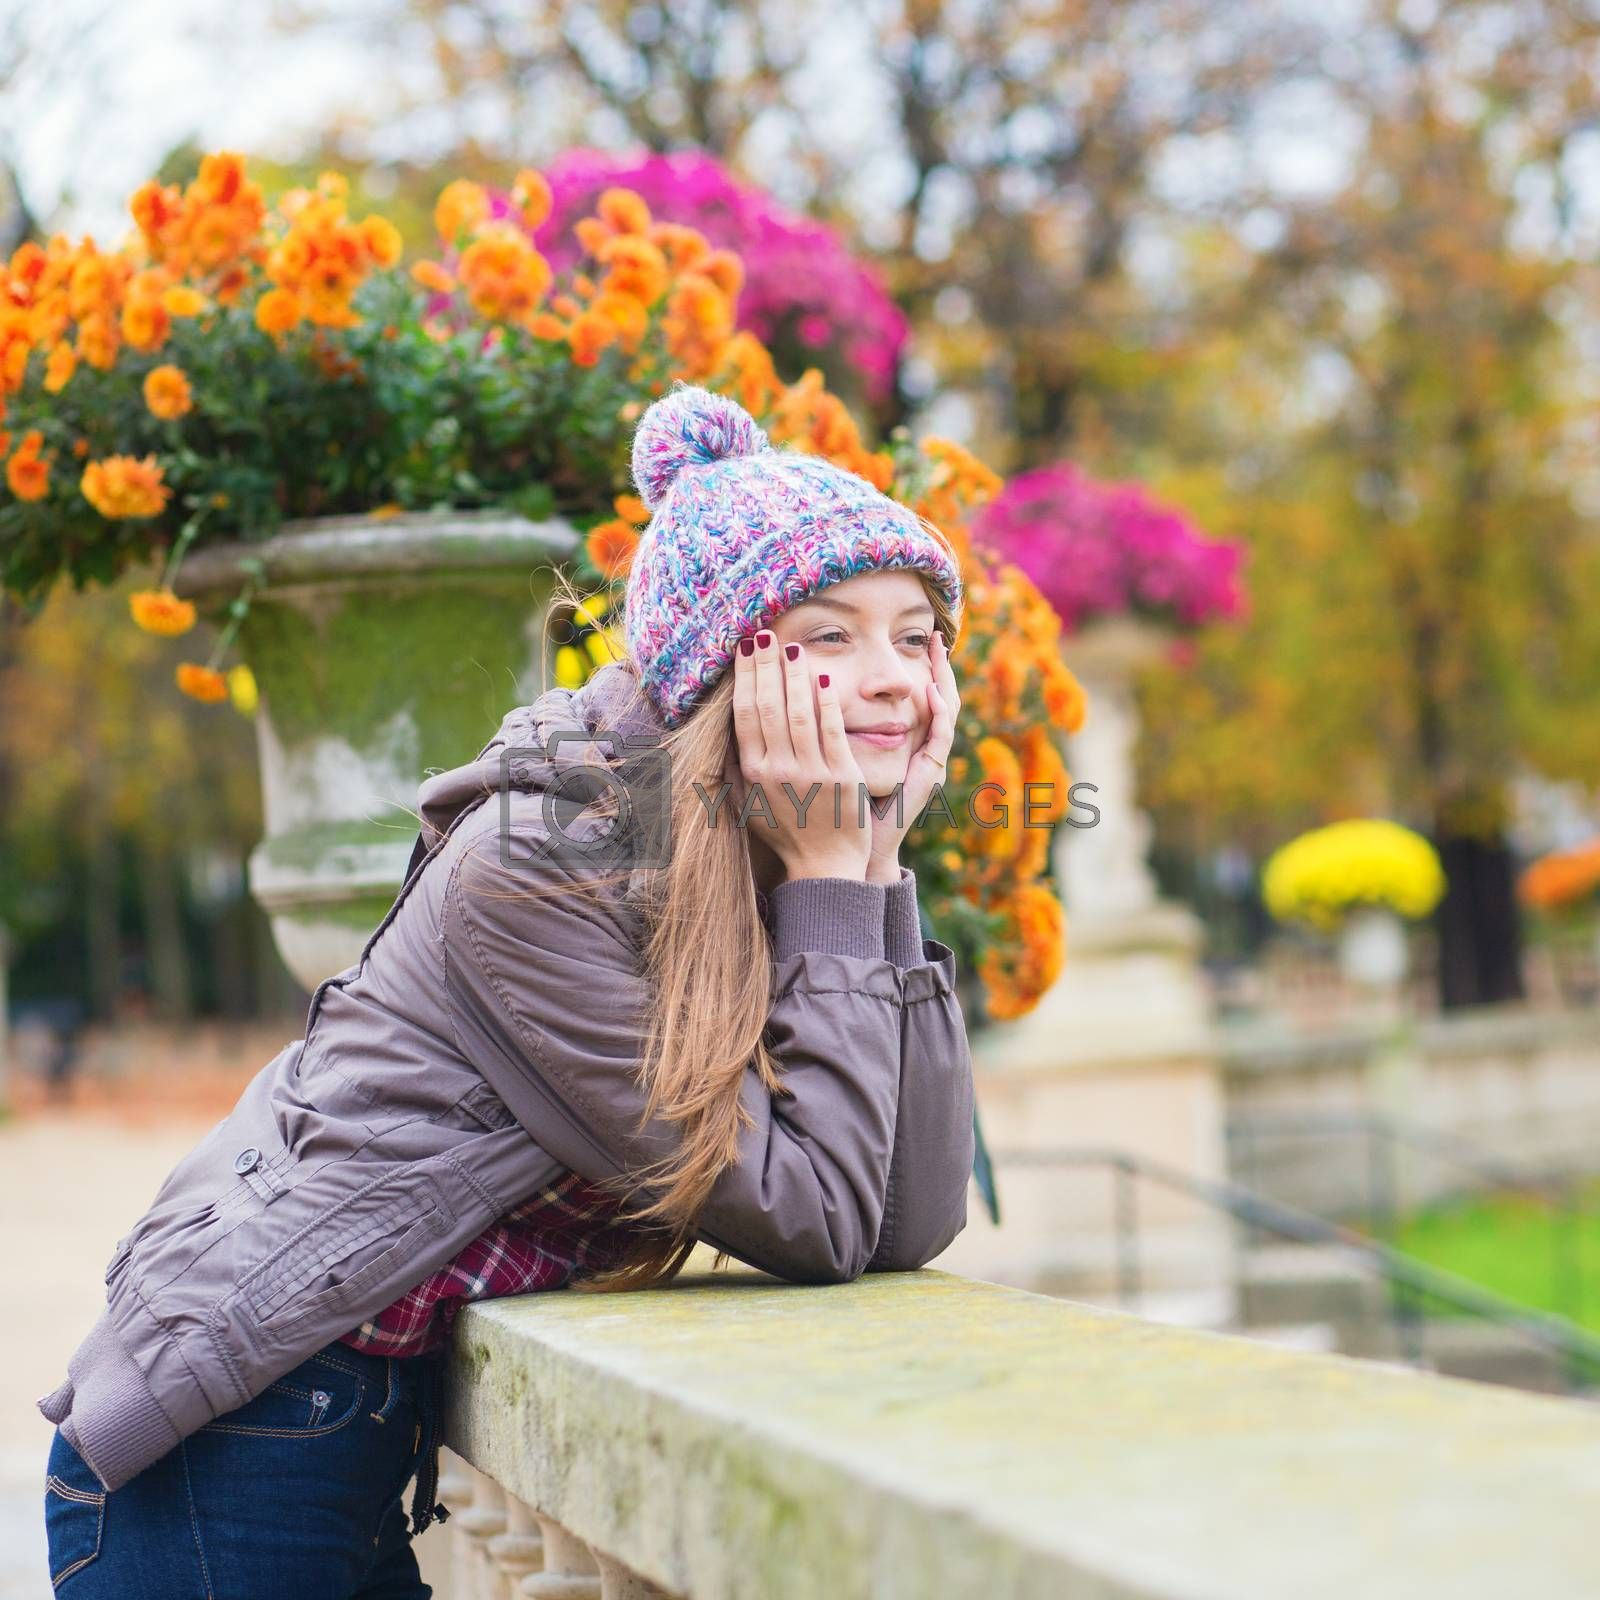 Young Parisian girl in the Luxembourg garden